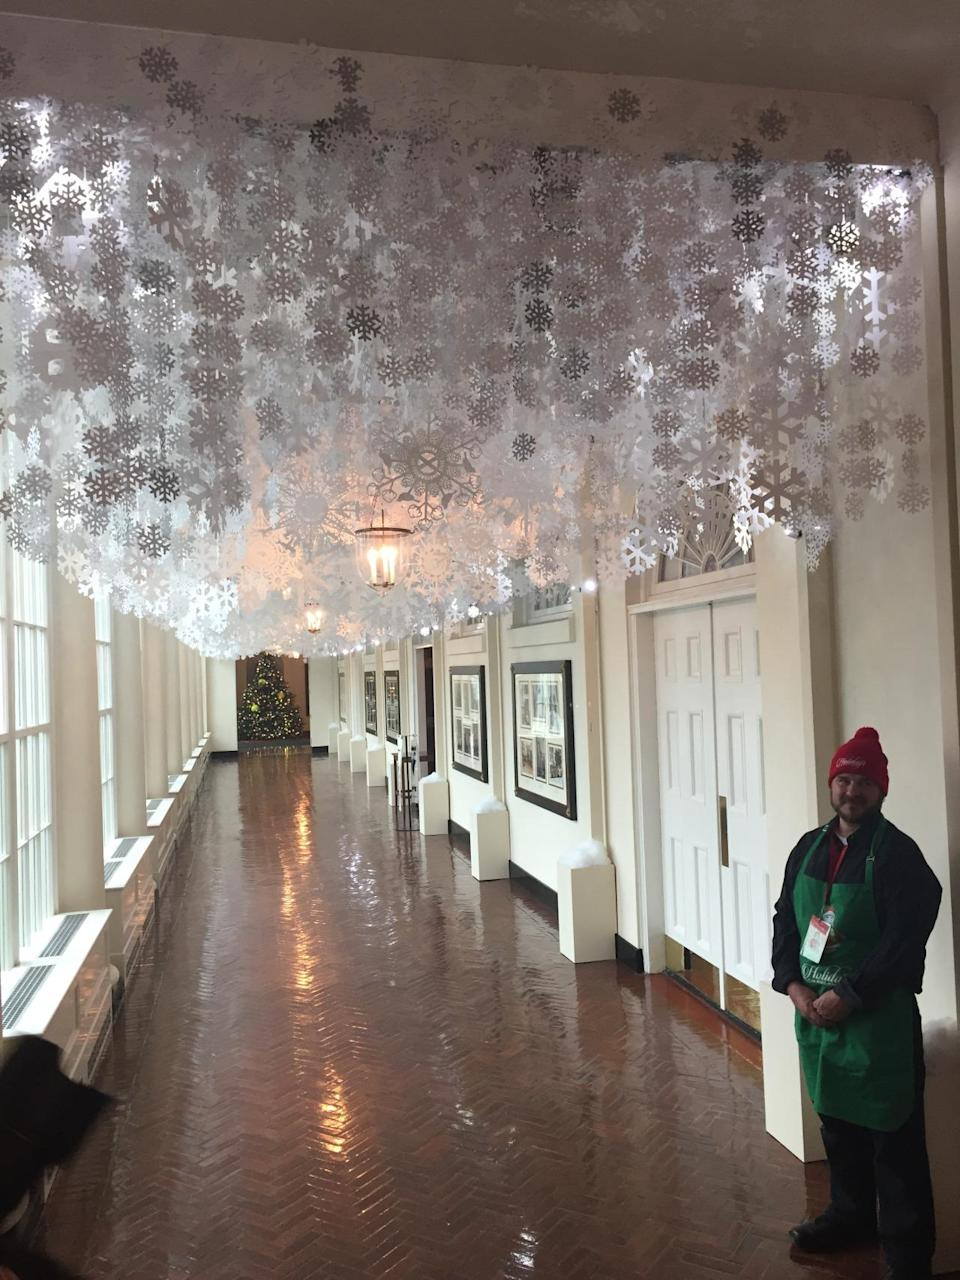 """<p>Visitors walk under hand-cut paper snowflakes in the East Colonnade as a tribute to first lady Michelle Obama's <a href=""""https://www.whitehouse.gov/reach-higher"""" rel=""""nofollow noopener"""" target=""""_blank"""" data-ylk=""""slk:Reach Higher initiative"""" class=""""link rapid-noclick-resp"""">Reach Higher initiative</a>. <i>(Photo: Cassie Carothers)</i></p>"""